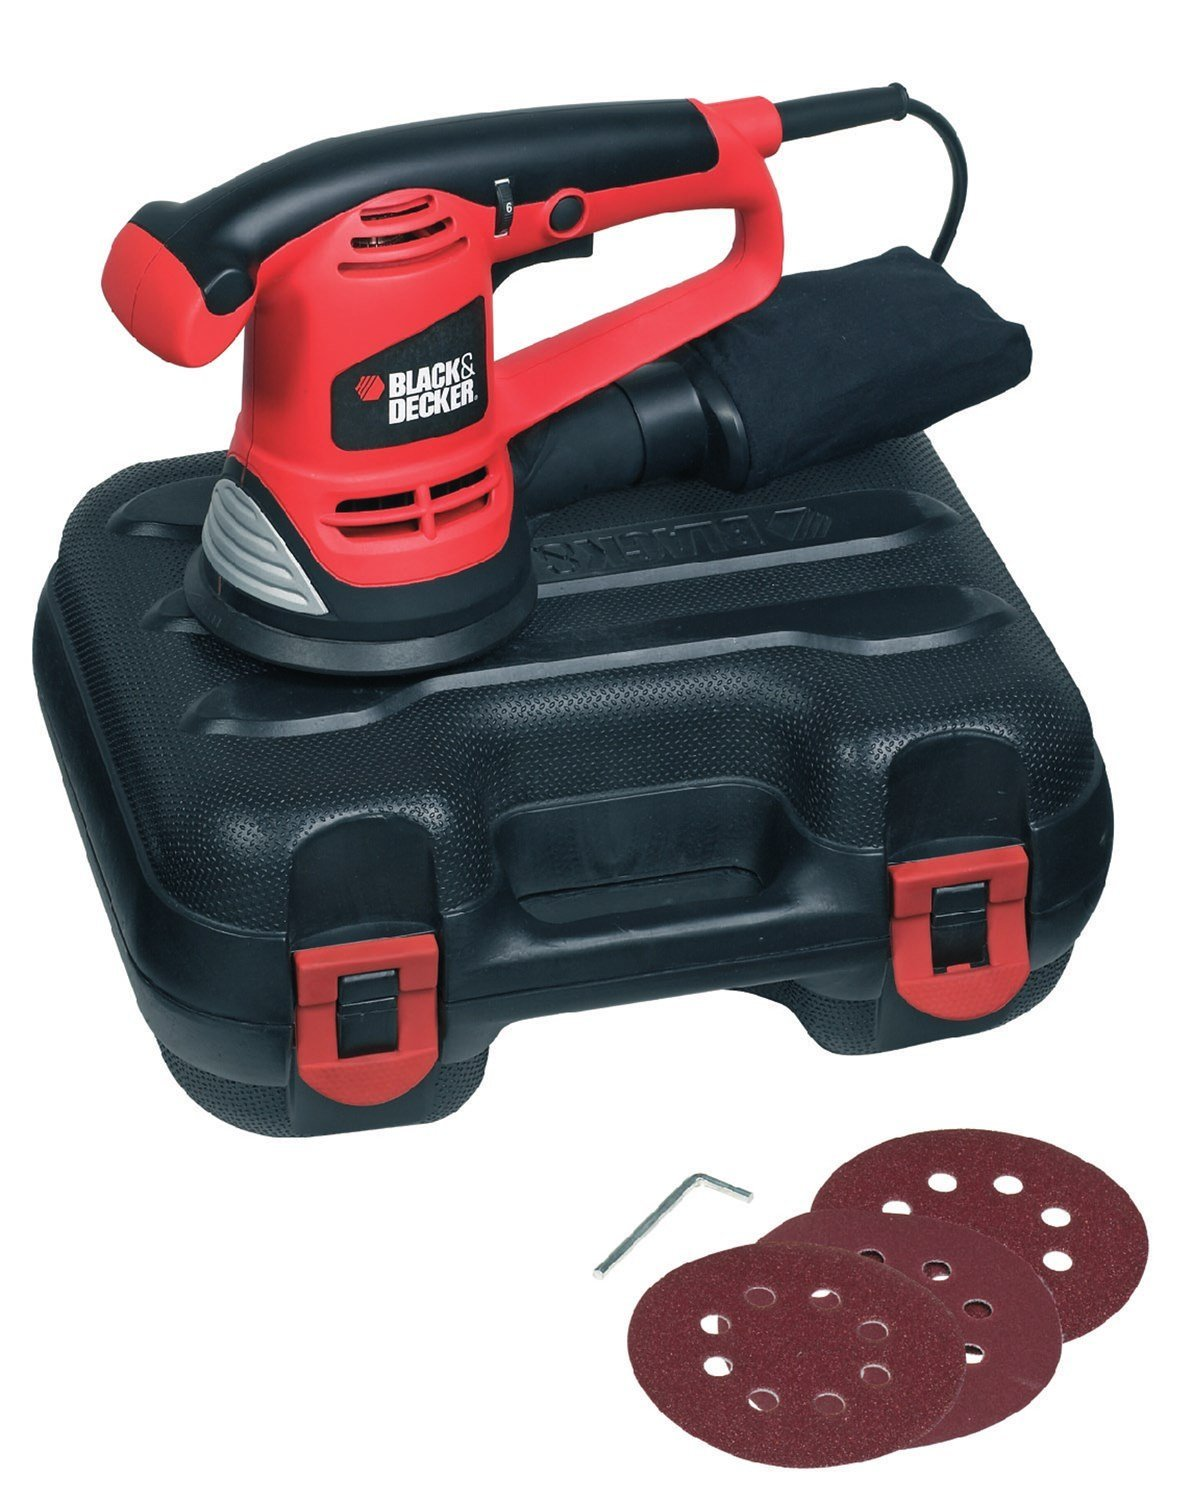 Code promo Amazon : Ponceuse excentrique 125 mm Black + Decker KA191EK 480 W à 39,99€